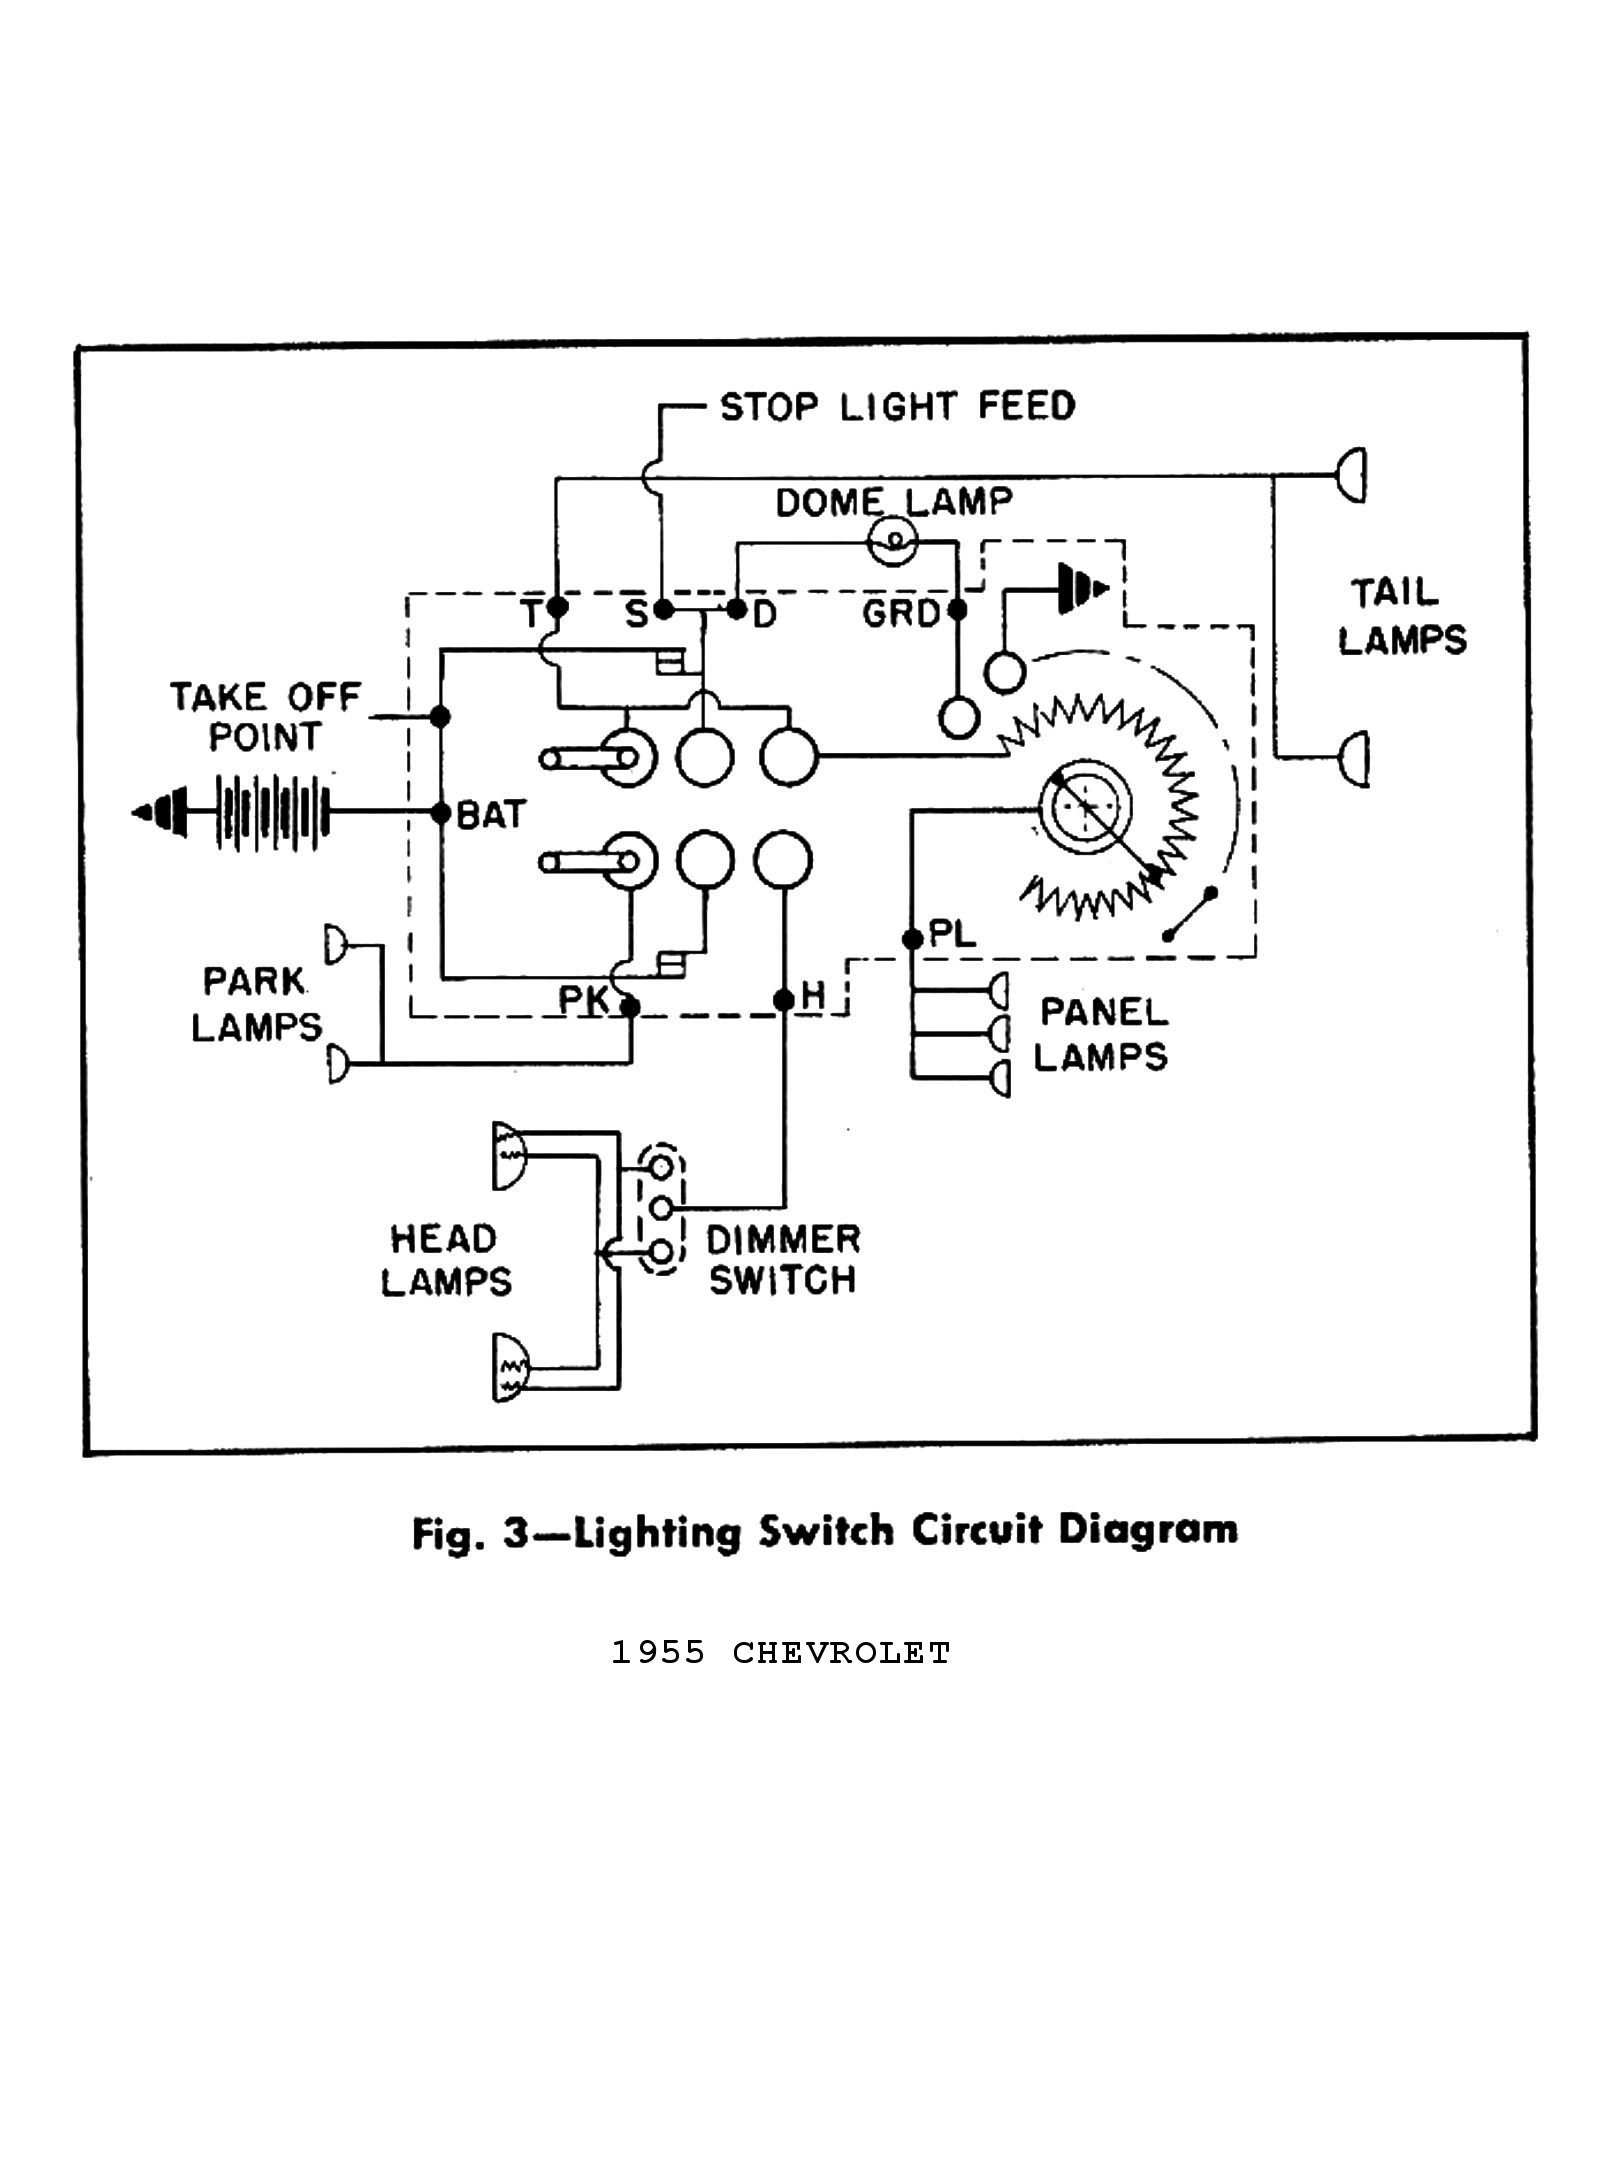 55ctsm1203 1957 chevy neutral safety switch wiring diagram wiring diagram 1954 chevy truck wiring diagram at bayanpartner.co